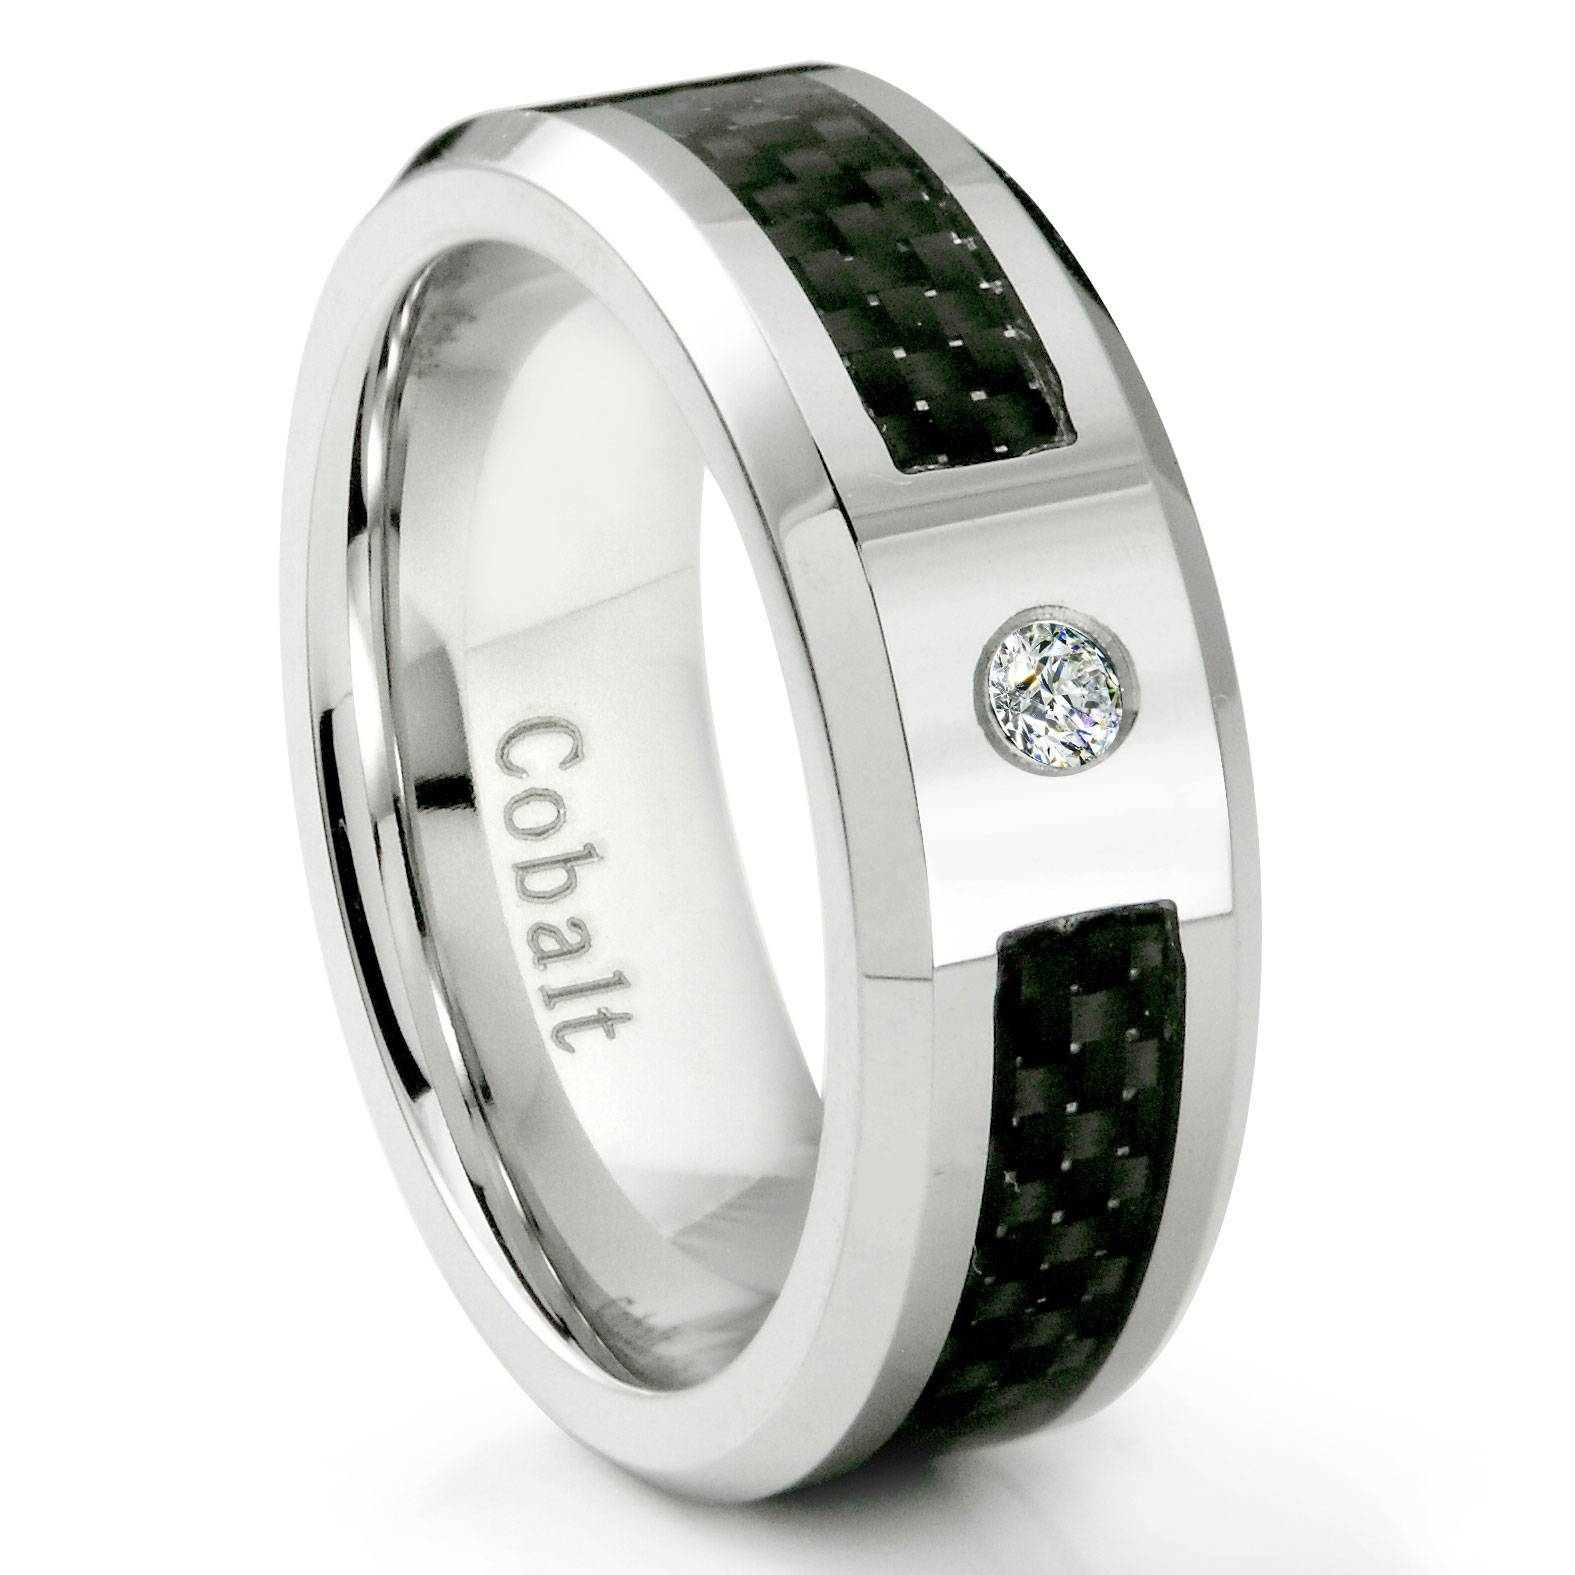 Cobalt Chrome 8Mm Diamond & Black Carbon Fiber Inlay Wedding Band Ring Throughout Cobalt Wedding Rings (View 3 of 15)